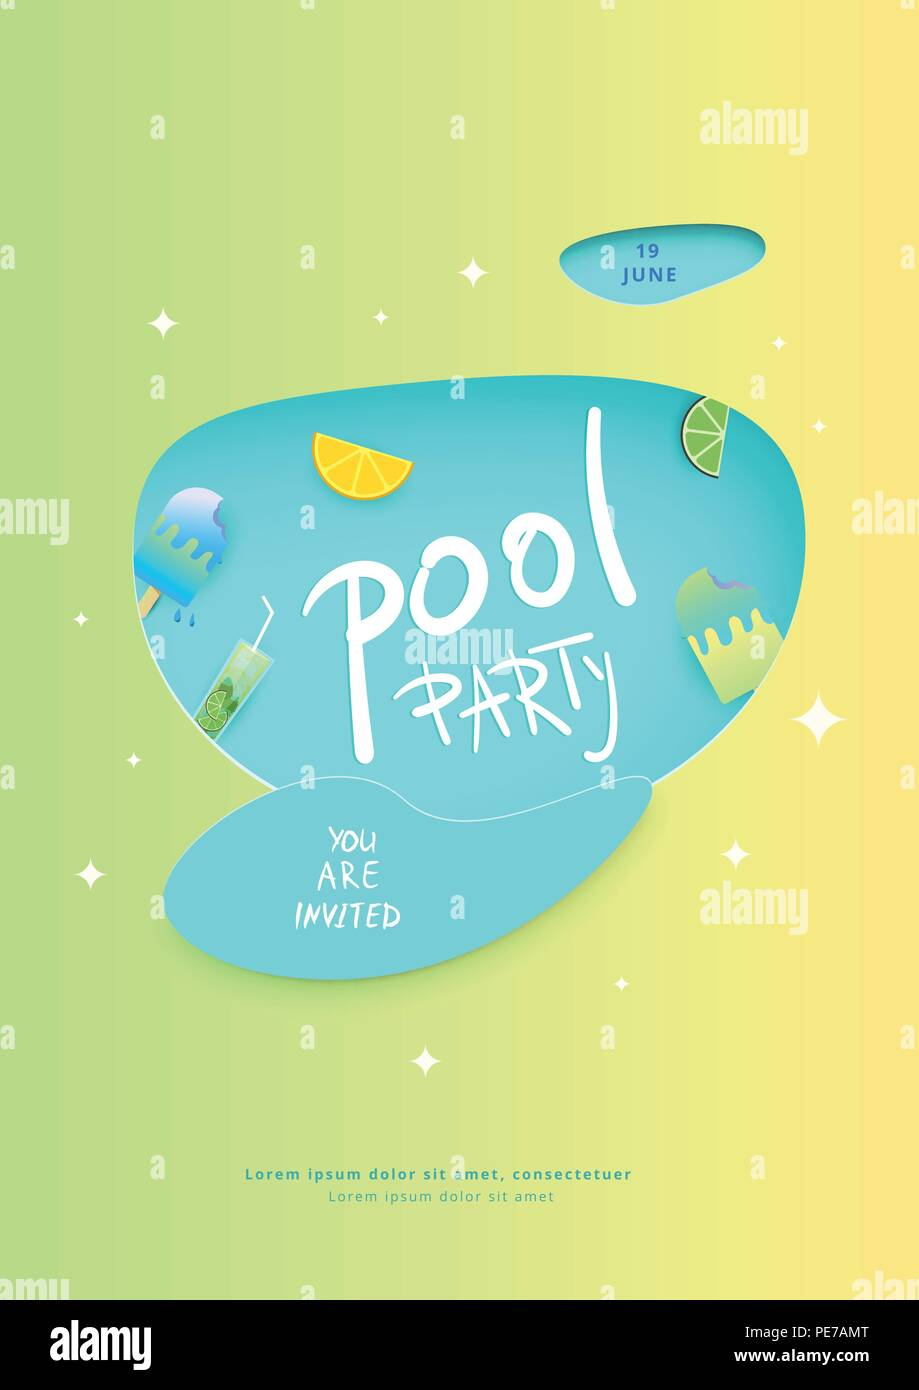 Vertical Pool Party Banner Template For Holiday Summer Flyer Design